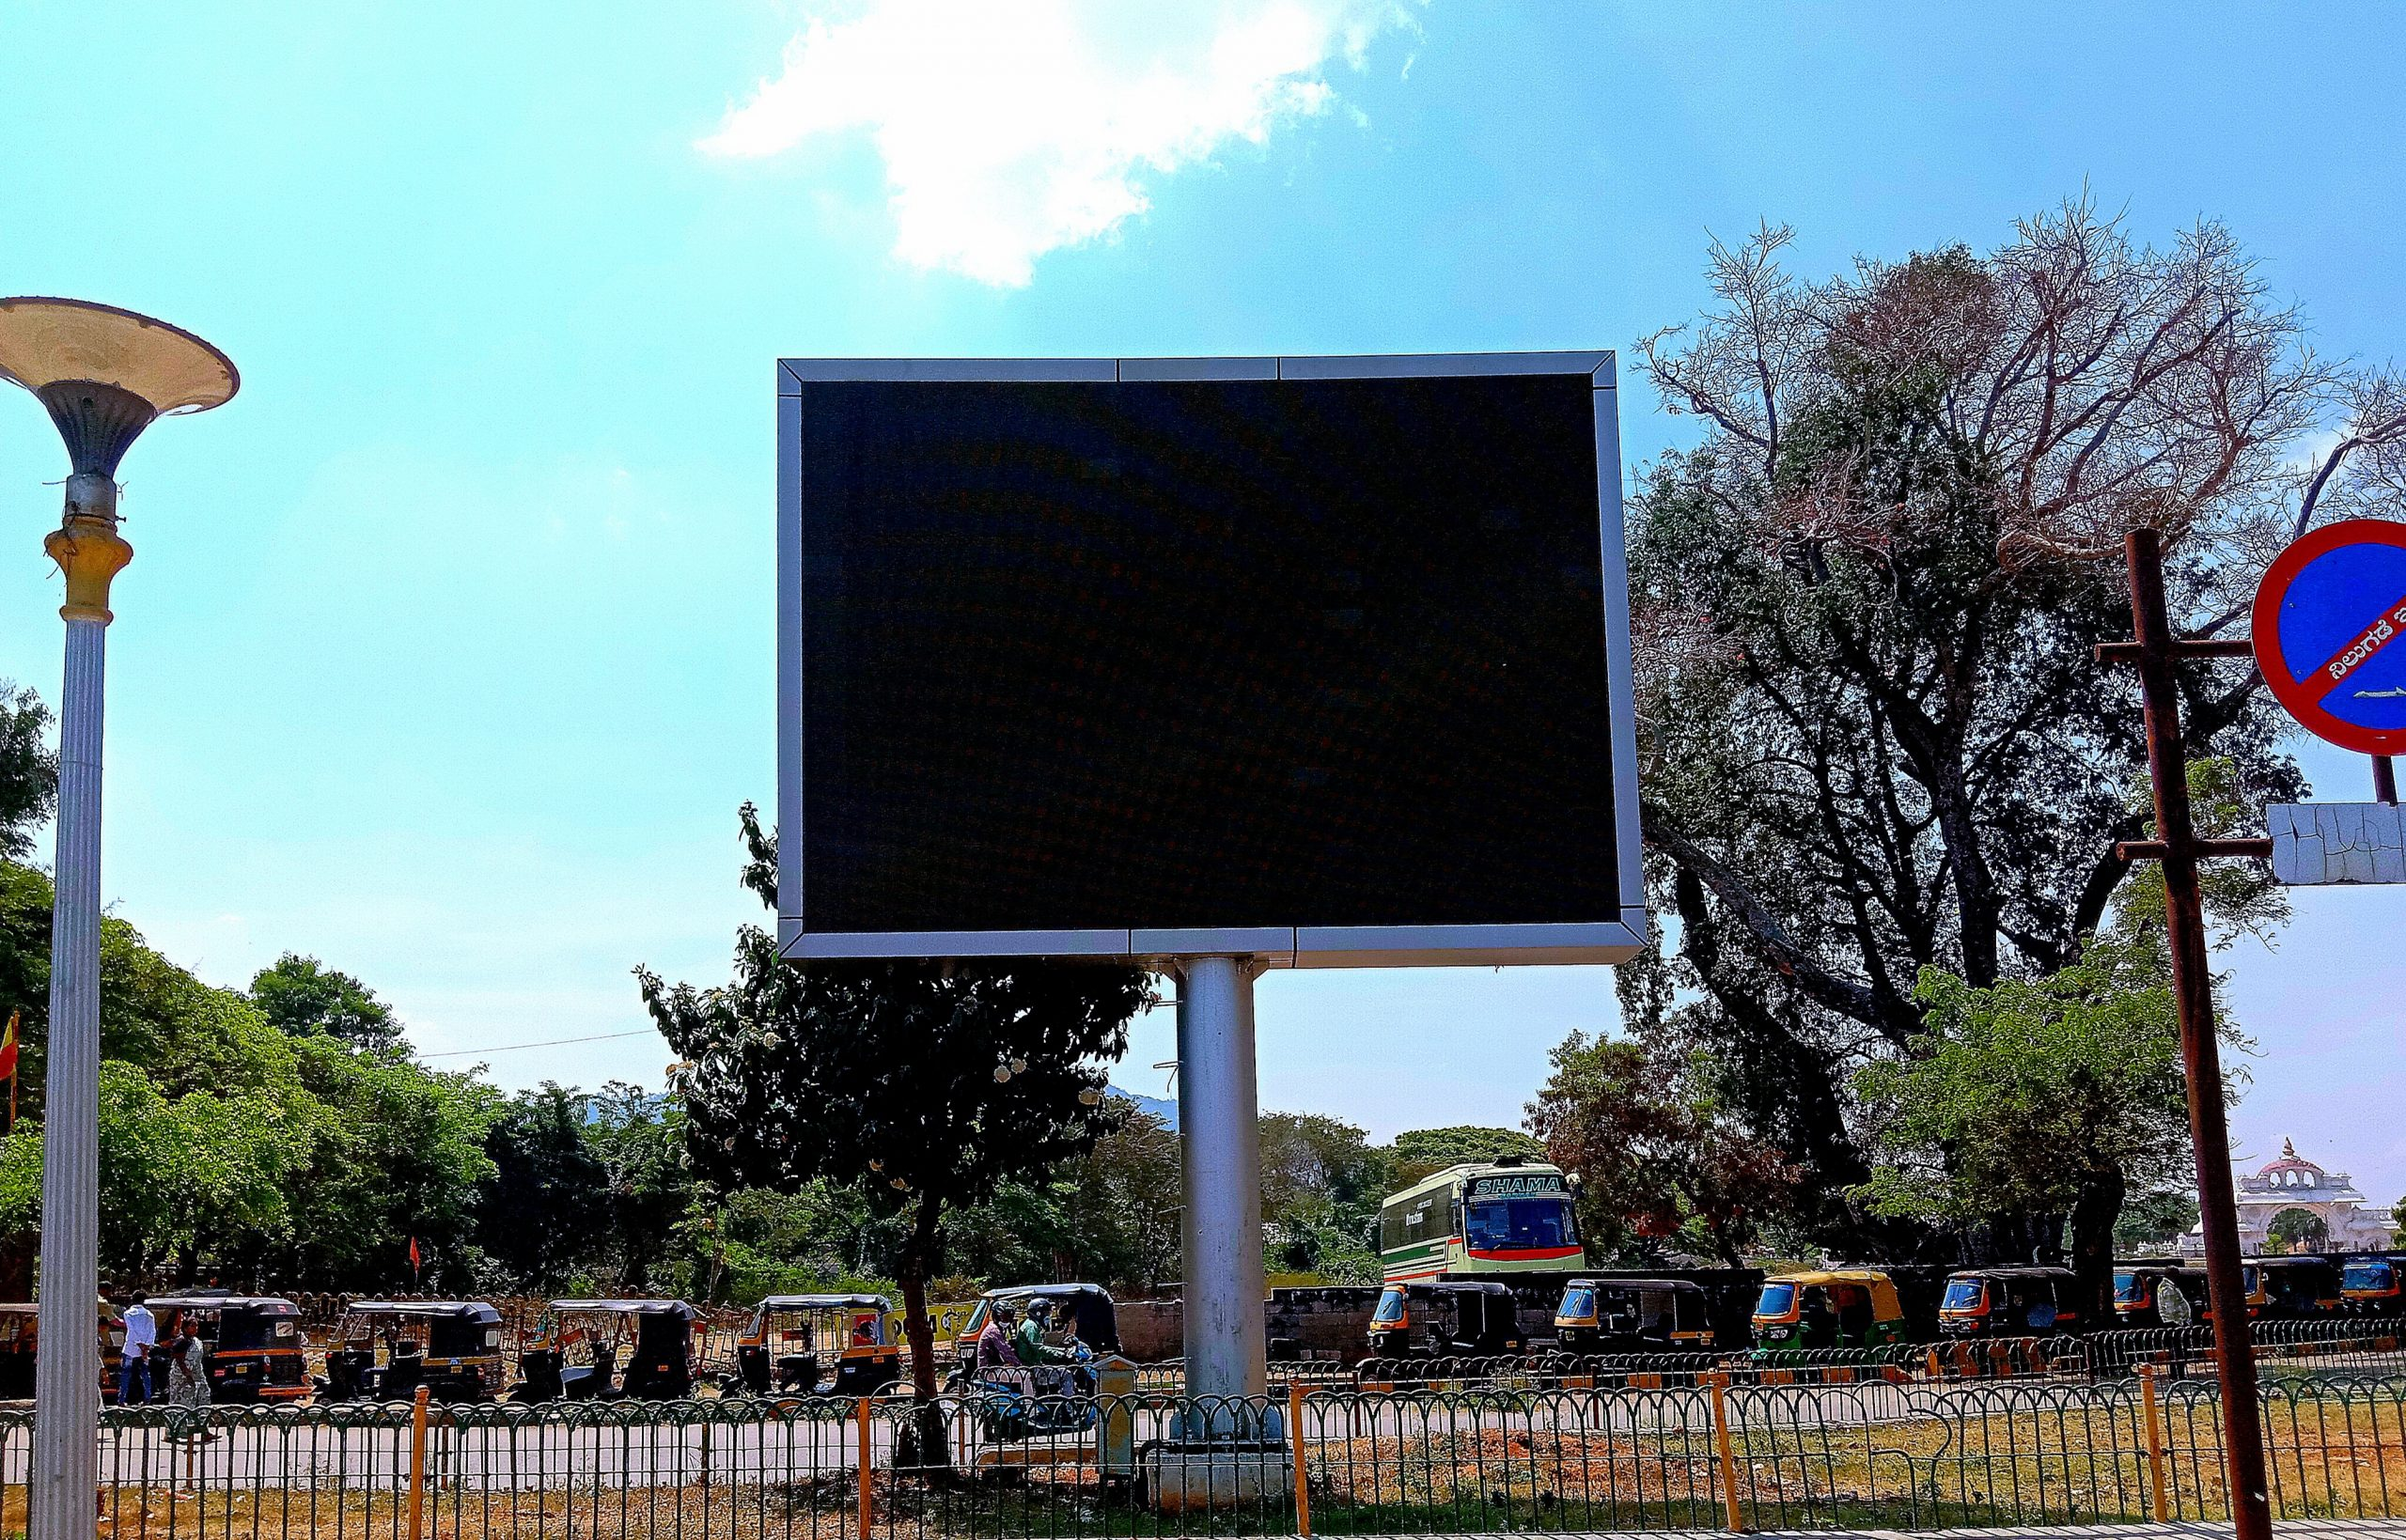 LED display screen at a public place